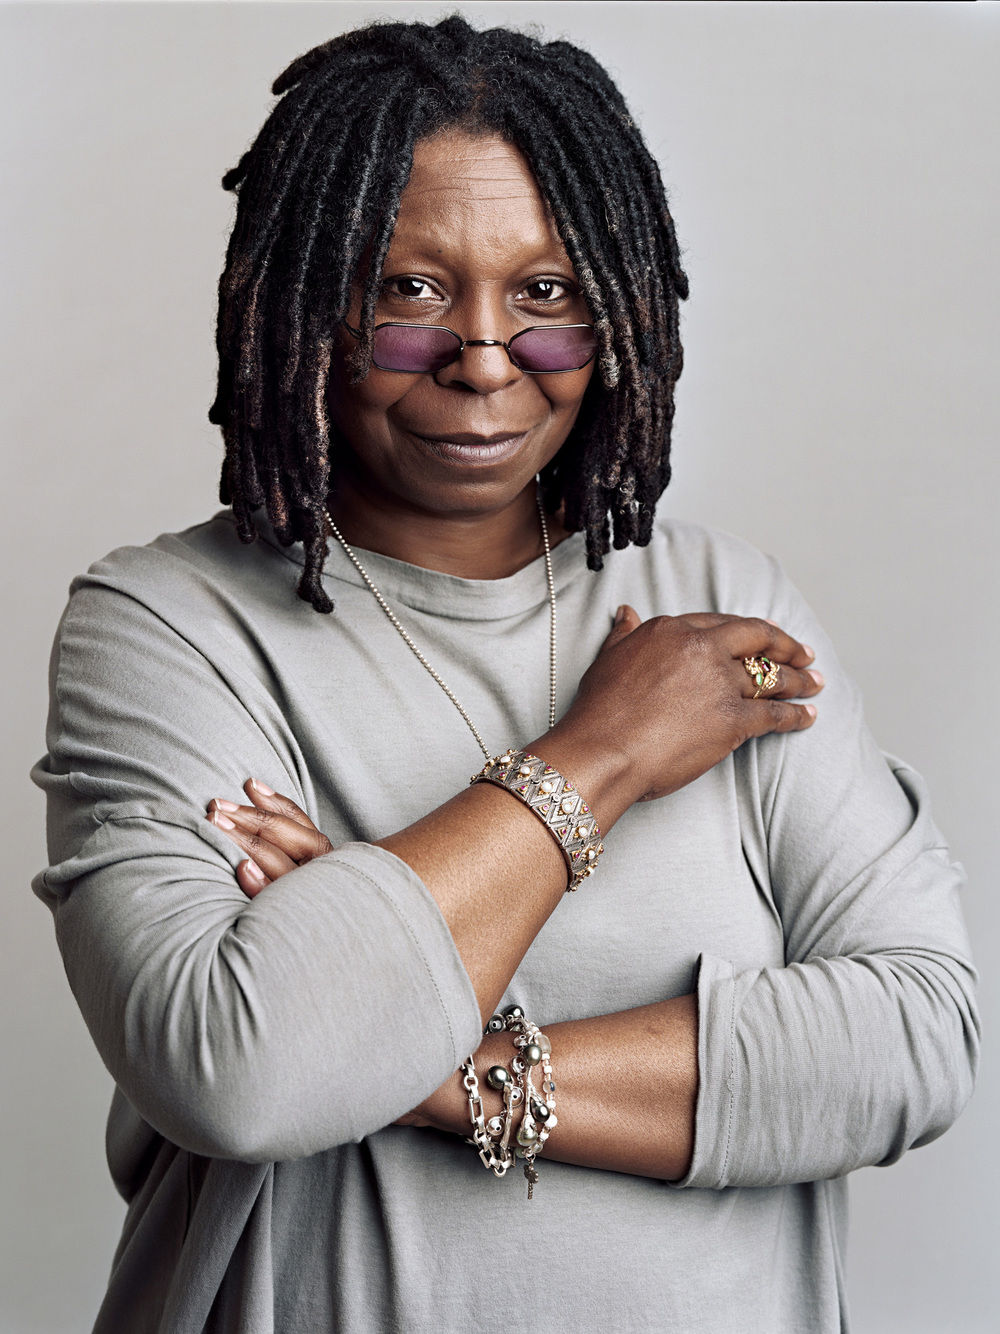 Whoopi-Goldberg-whoopi-goldberg-31581577-1919-2560.jpg